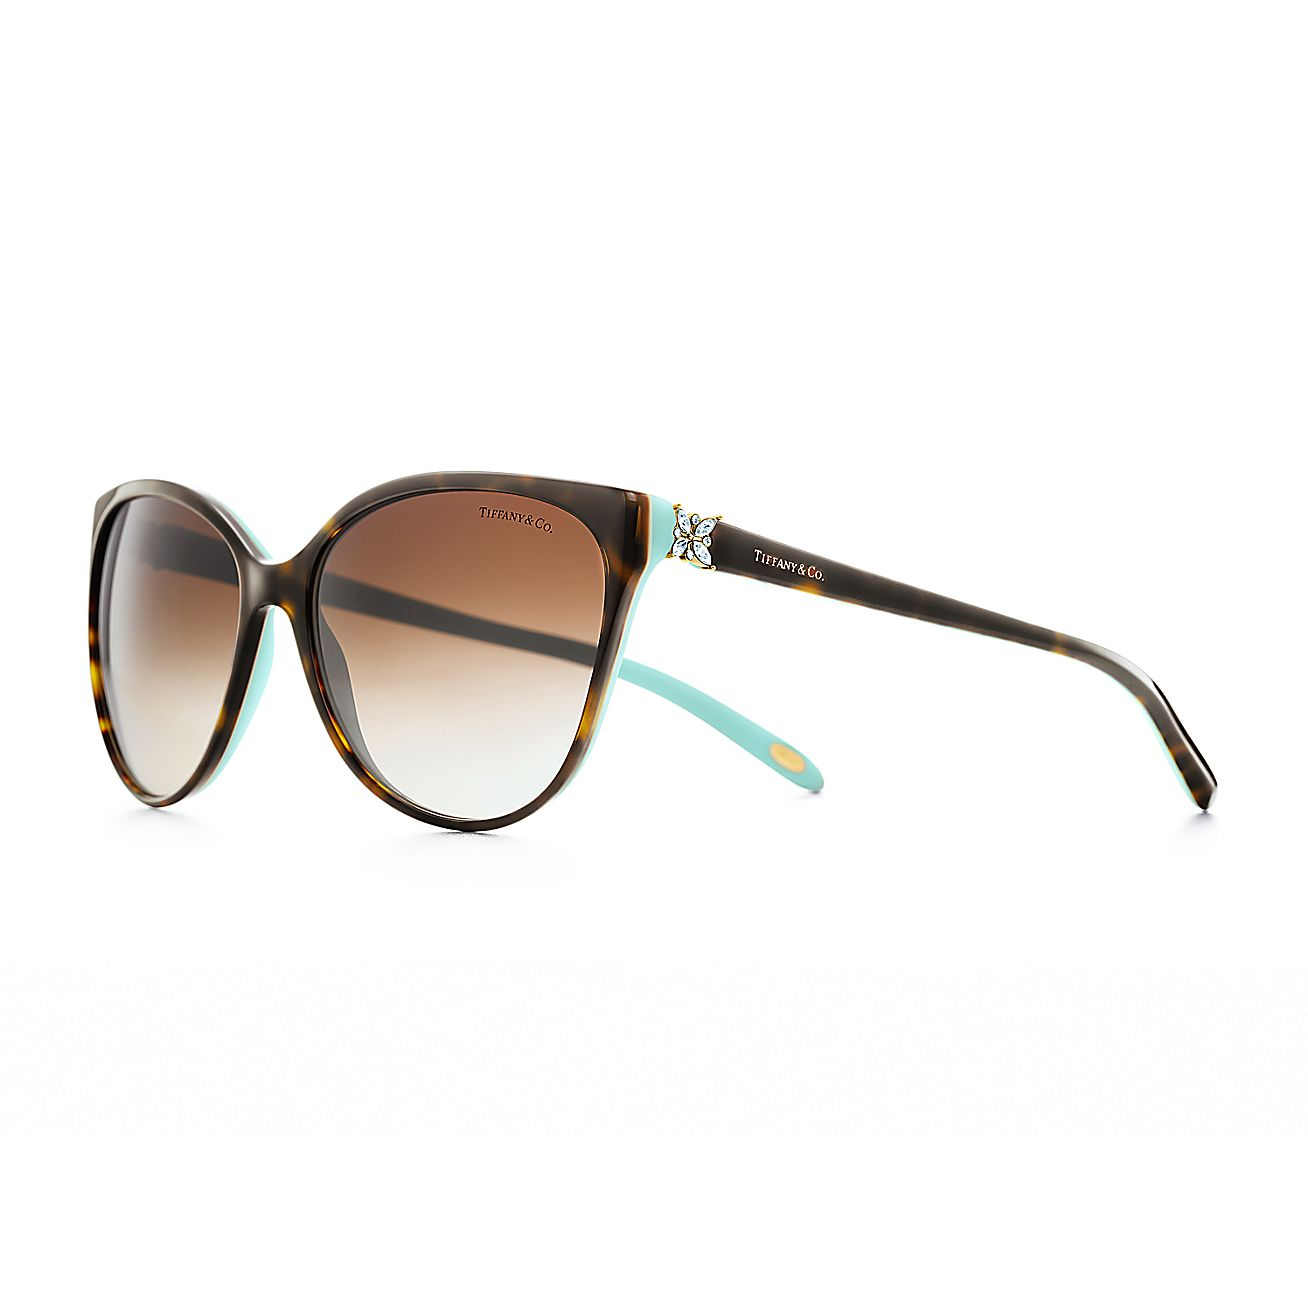 Replica Tiffany Sunglasses David Simchi Levi